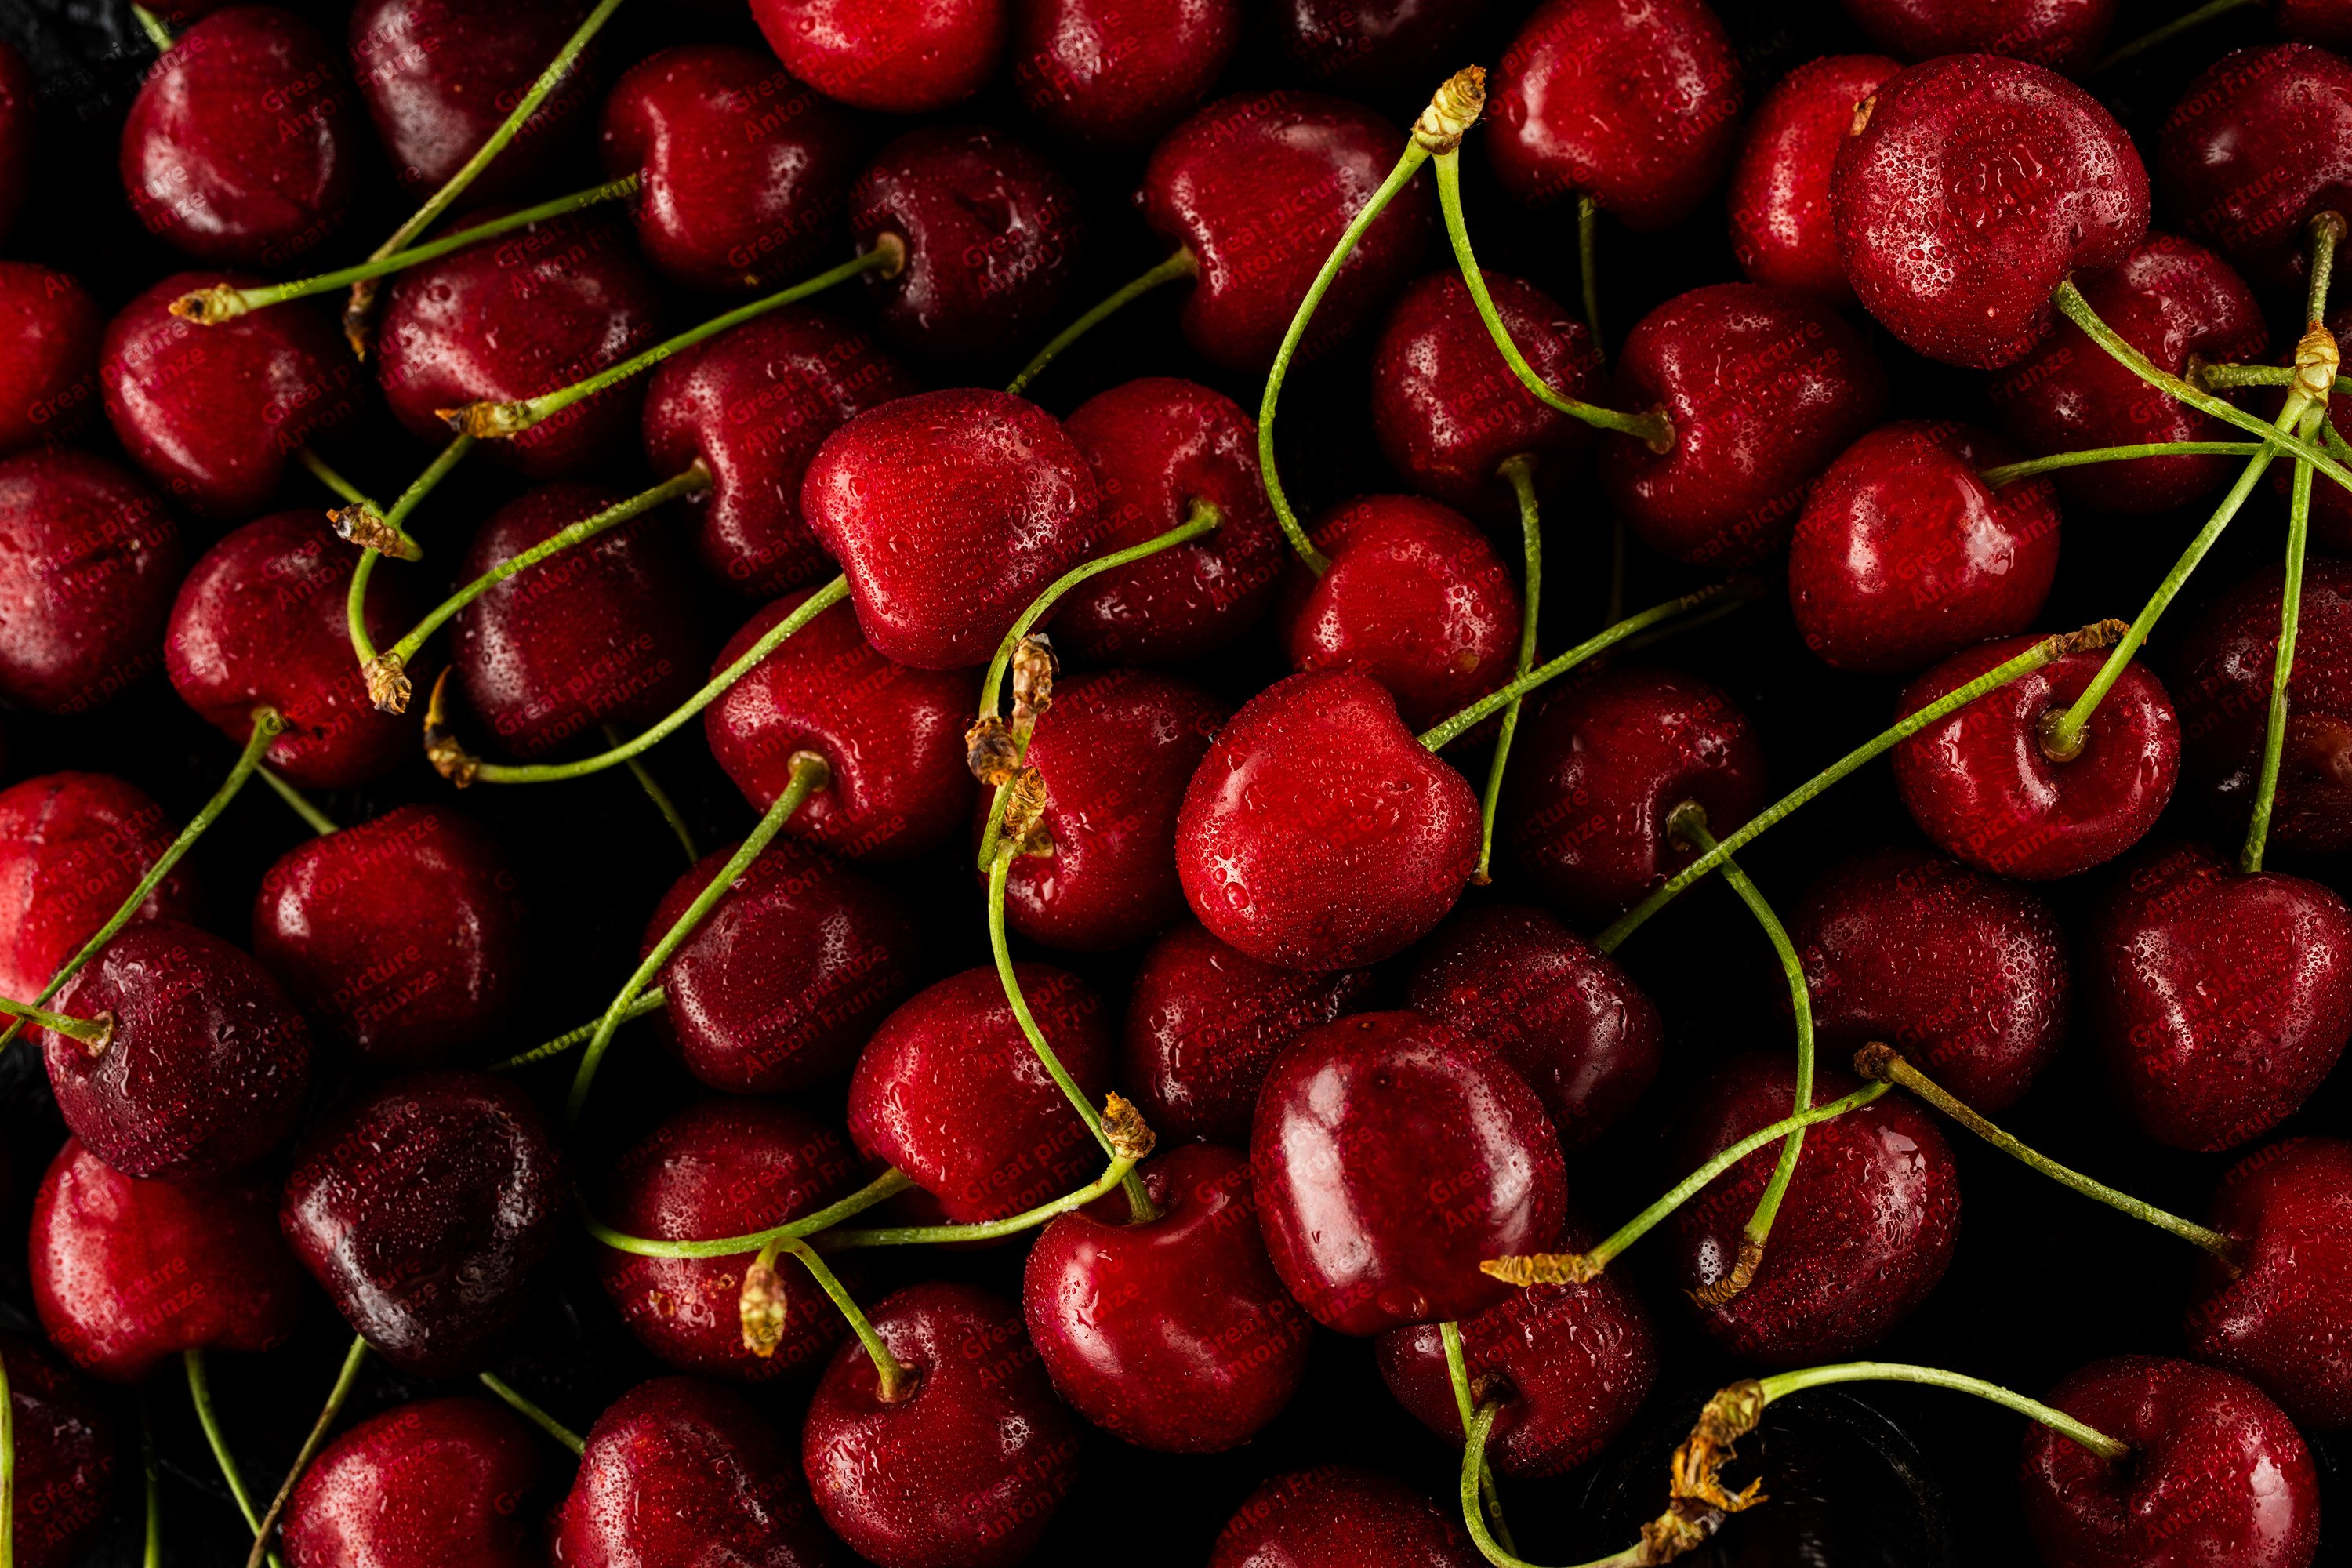 6 photos of juicy cherry texture with water drops example image 2